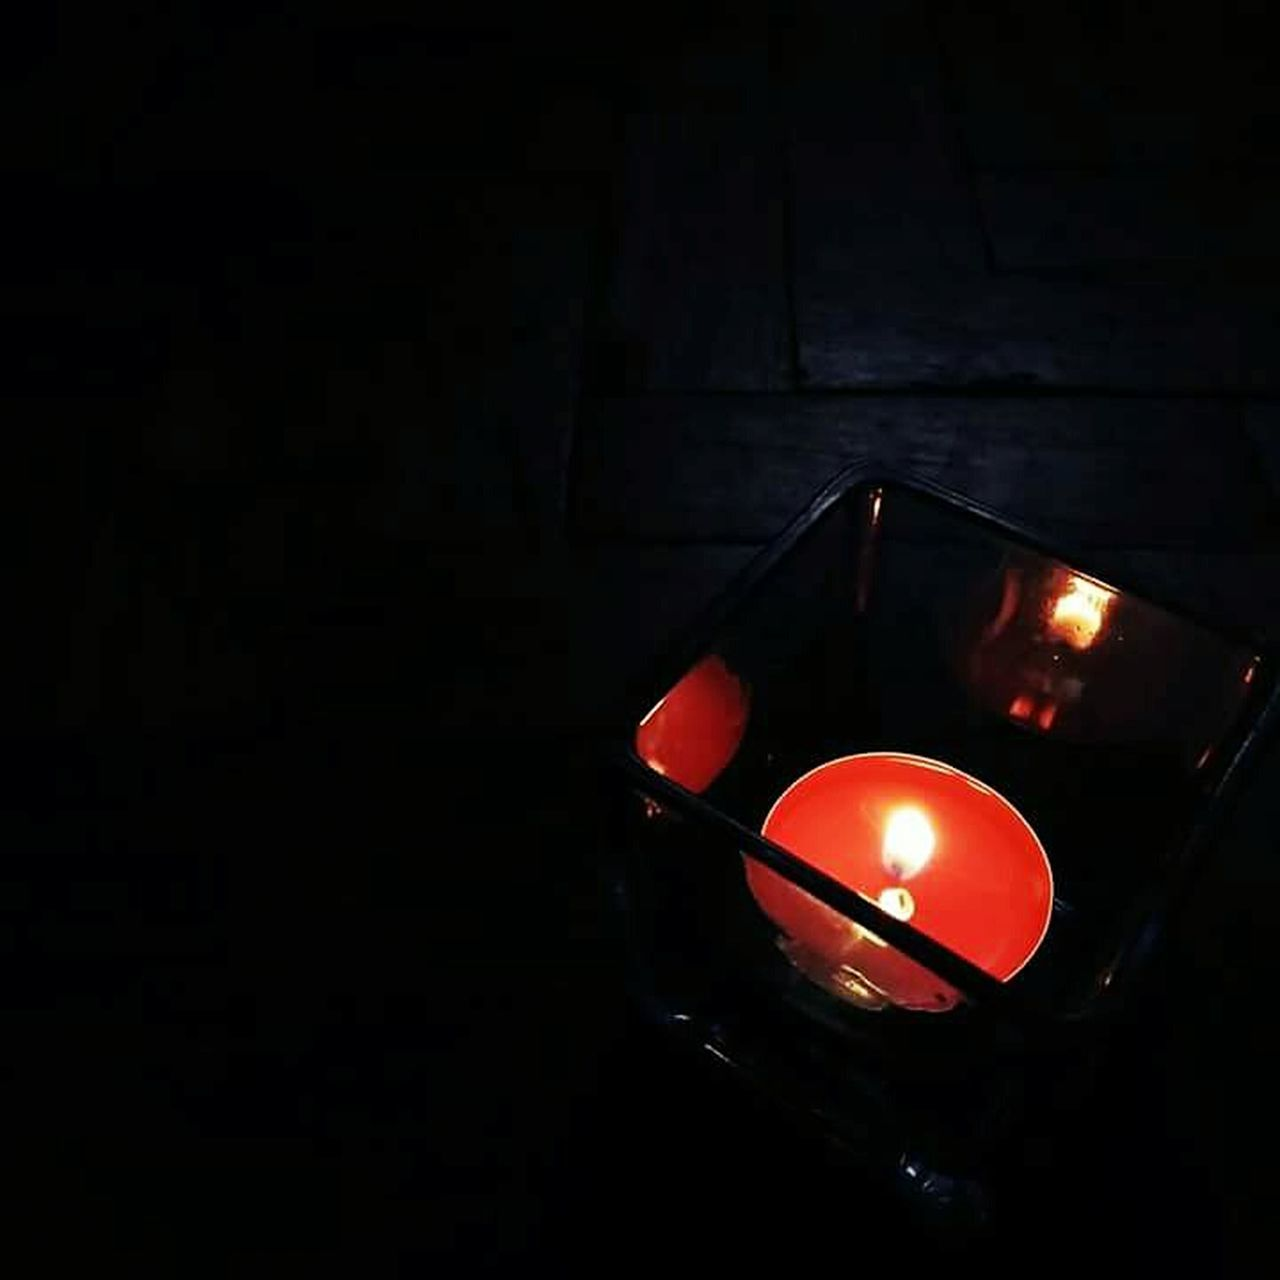 Red No People Indoors  Black Background Night Candle Light